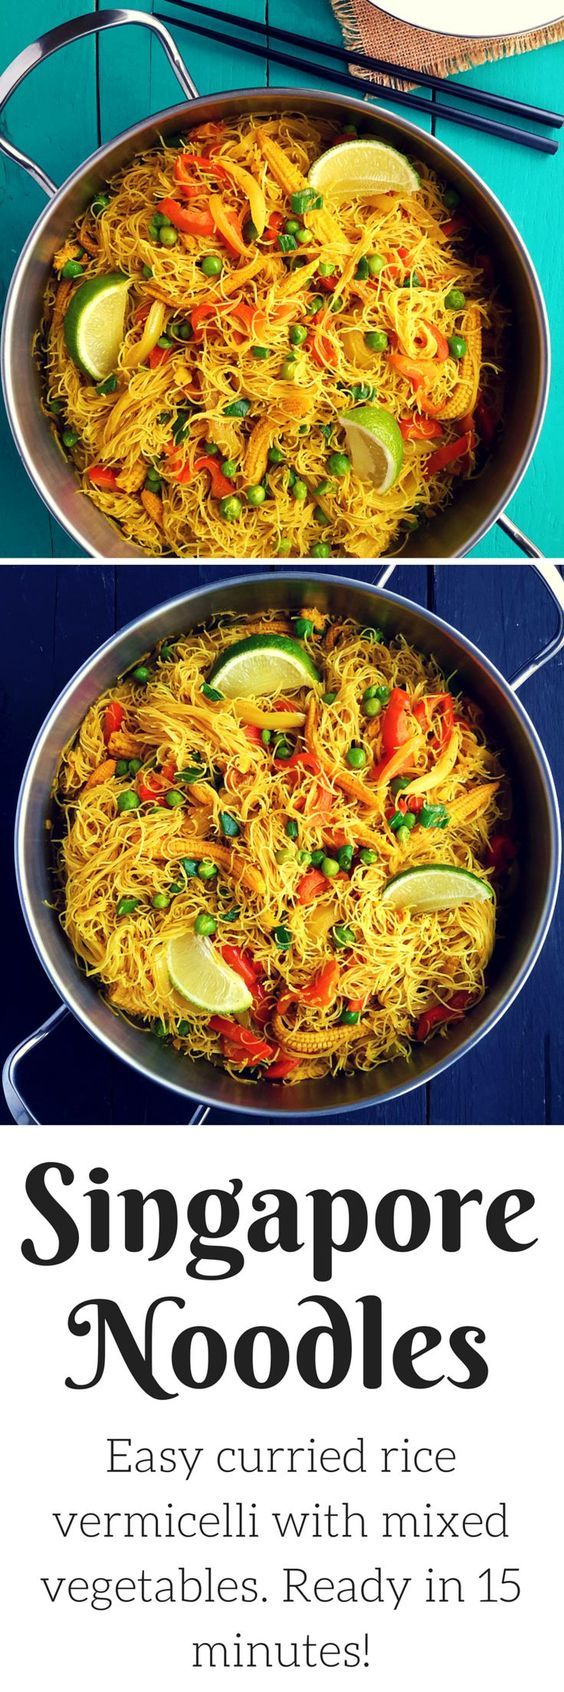 Vegetable Singapore noodles #vegan #vegetarianrecipes http://ncnskincare.com/